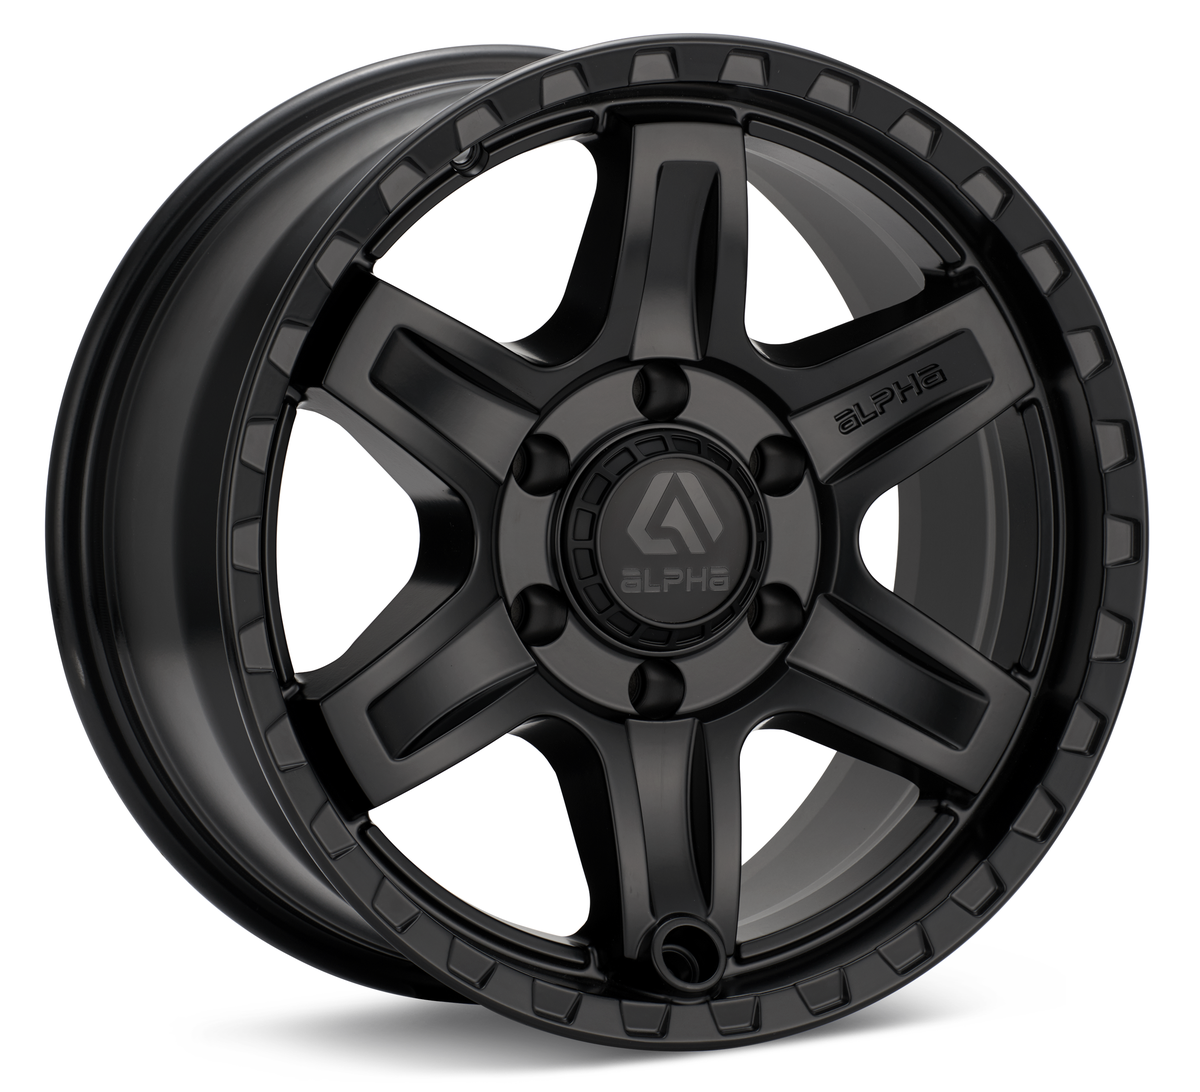 Alpha Equipt Delta | Matte Black | 6x120 | +20mm | 17x8.5 - Colorado & Canyon Enthusiasts